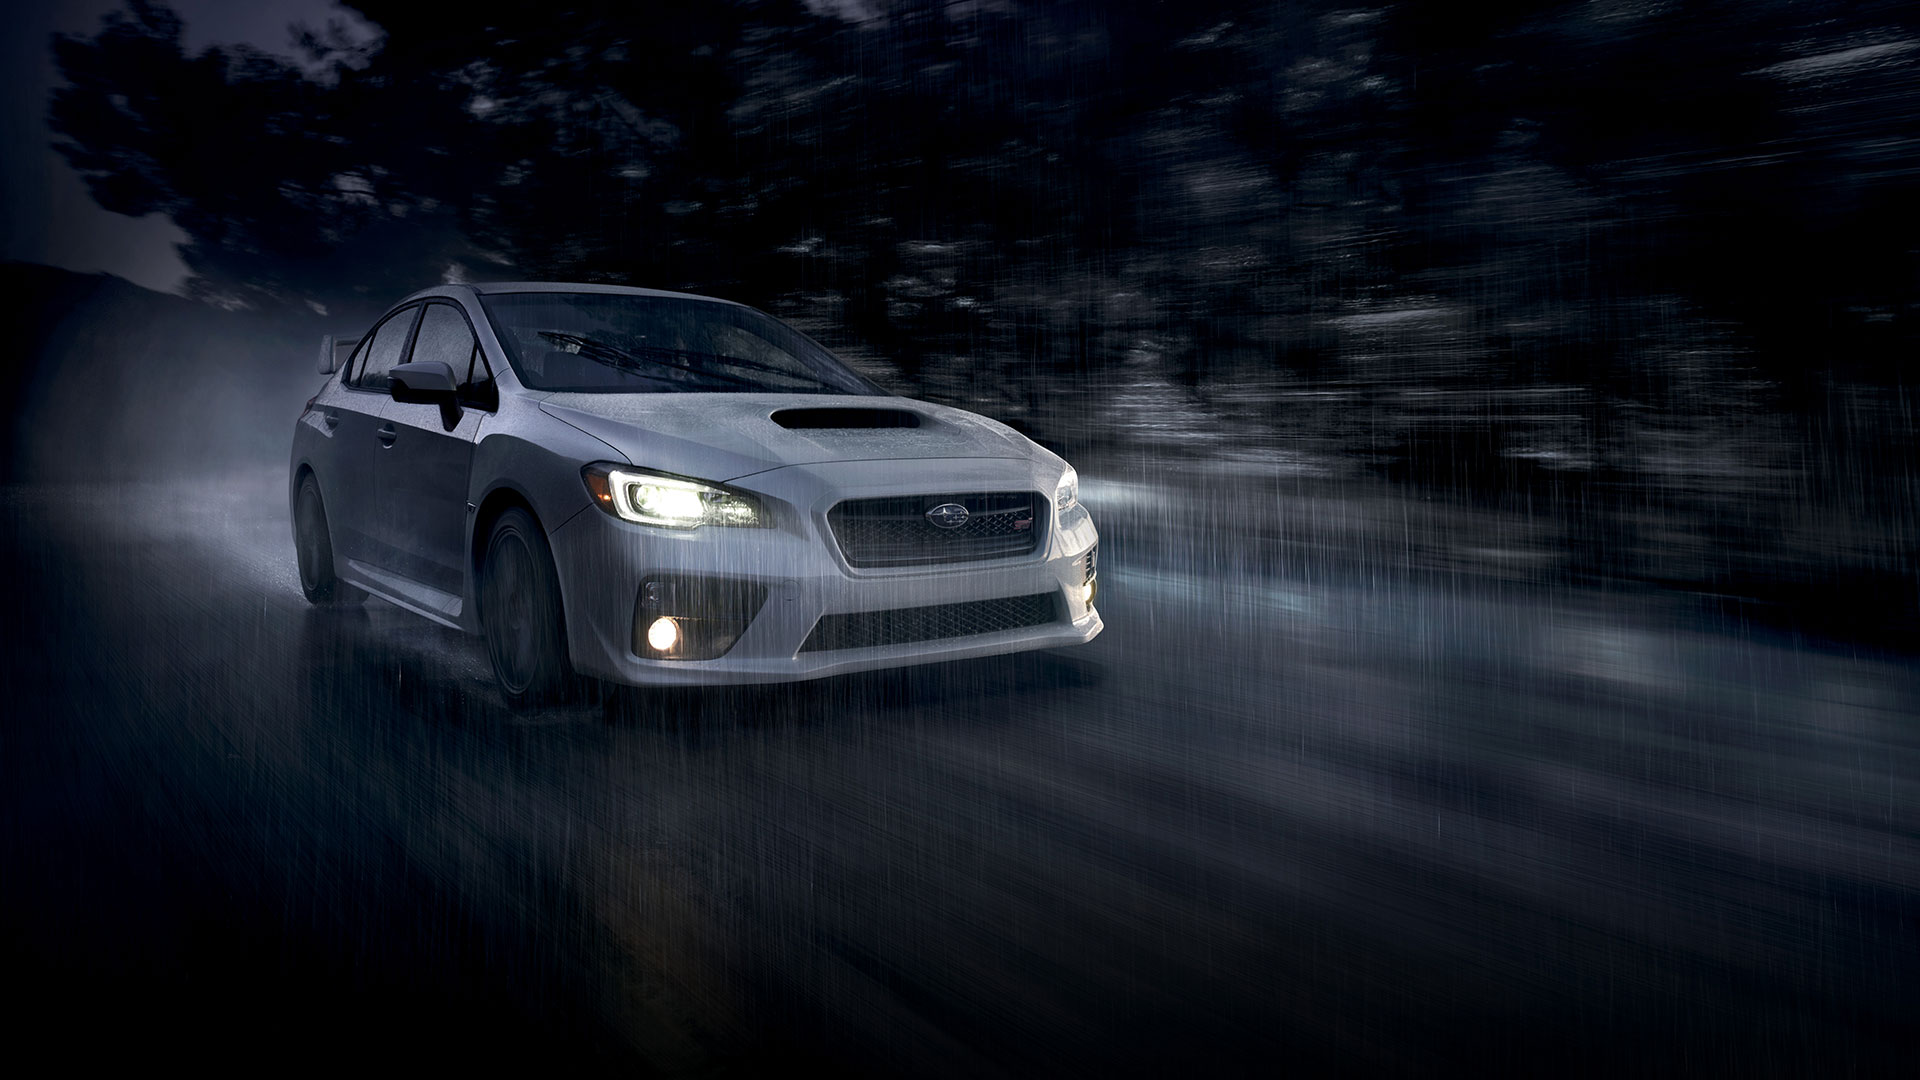 2016 Sti Order Officially Placed Page 5 Subaru Impreza